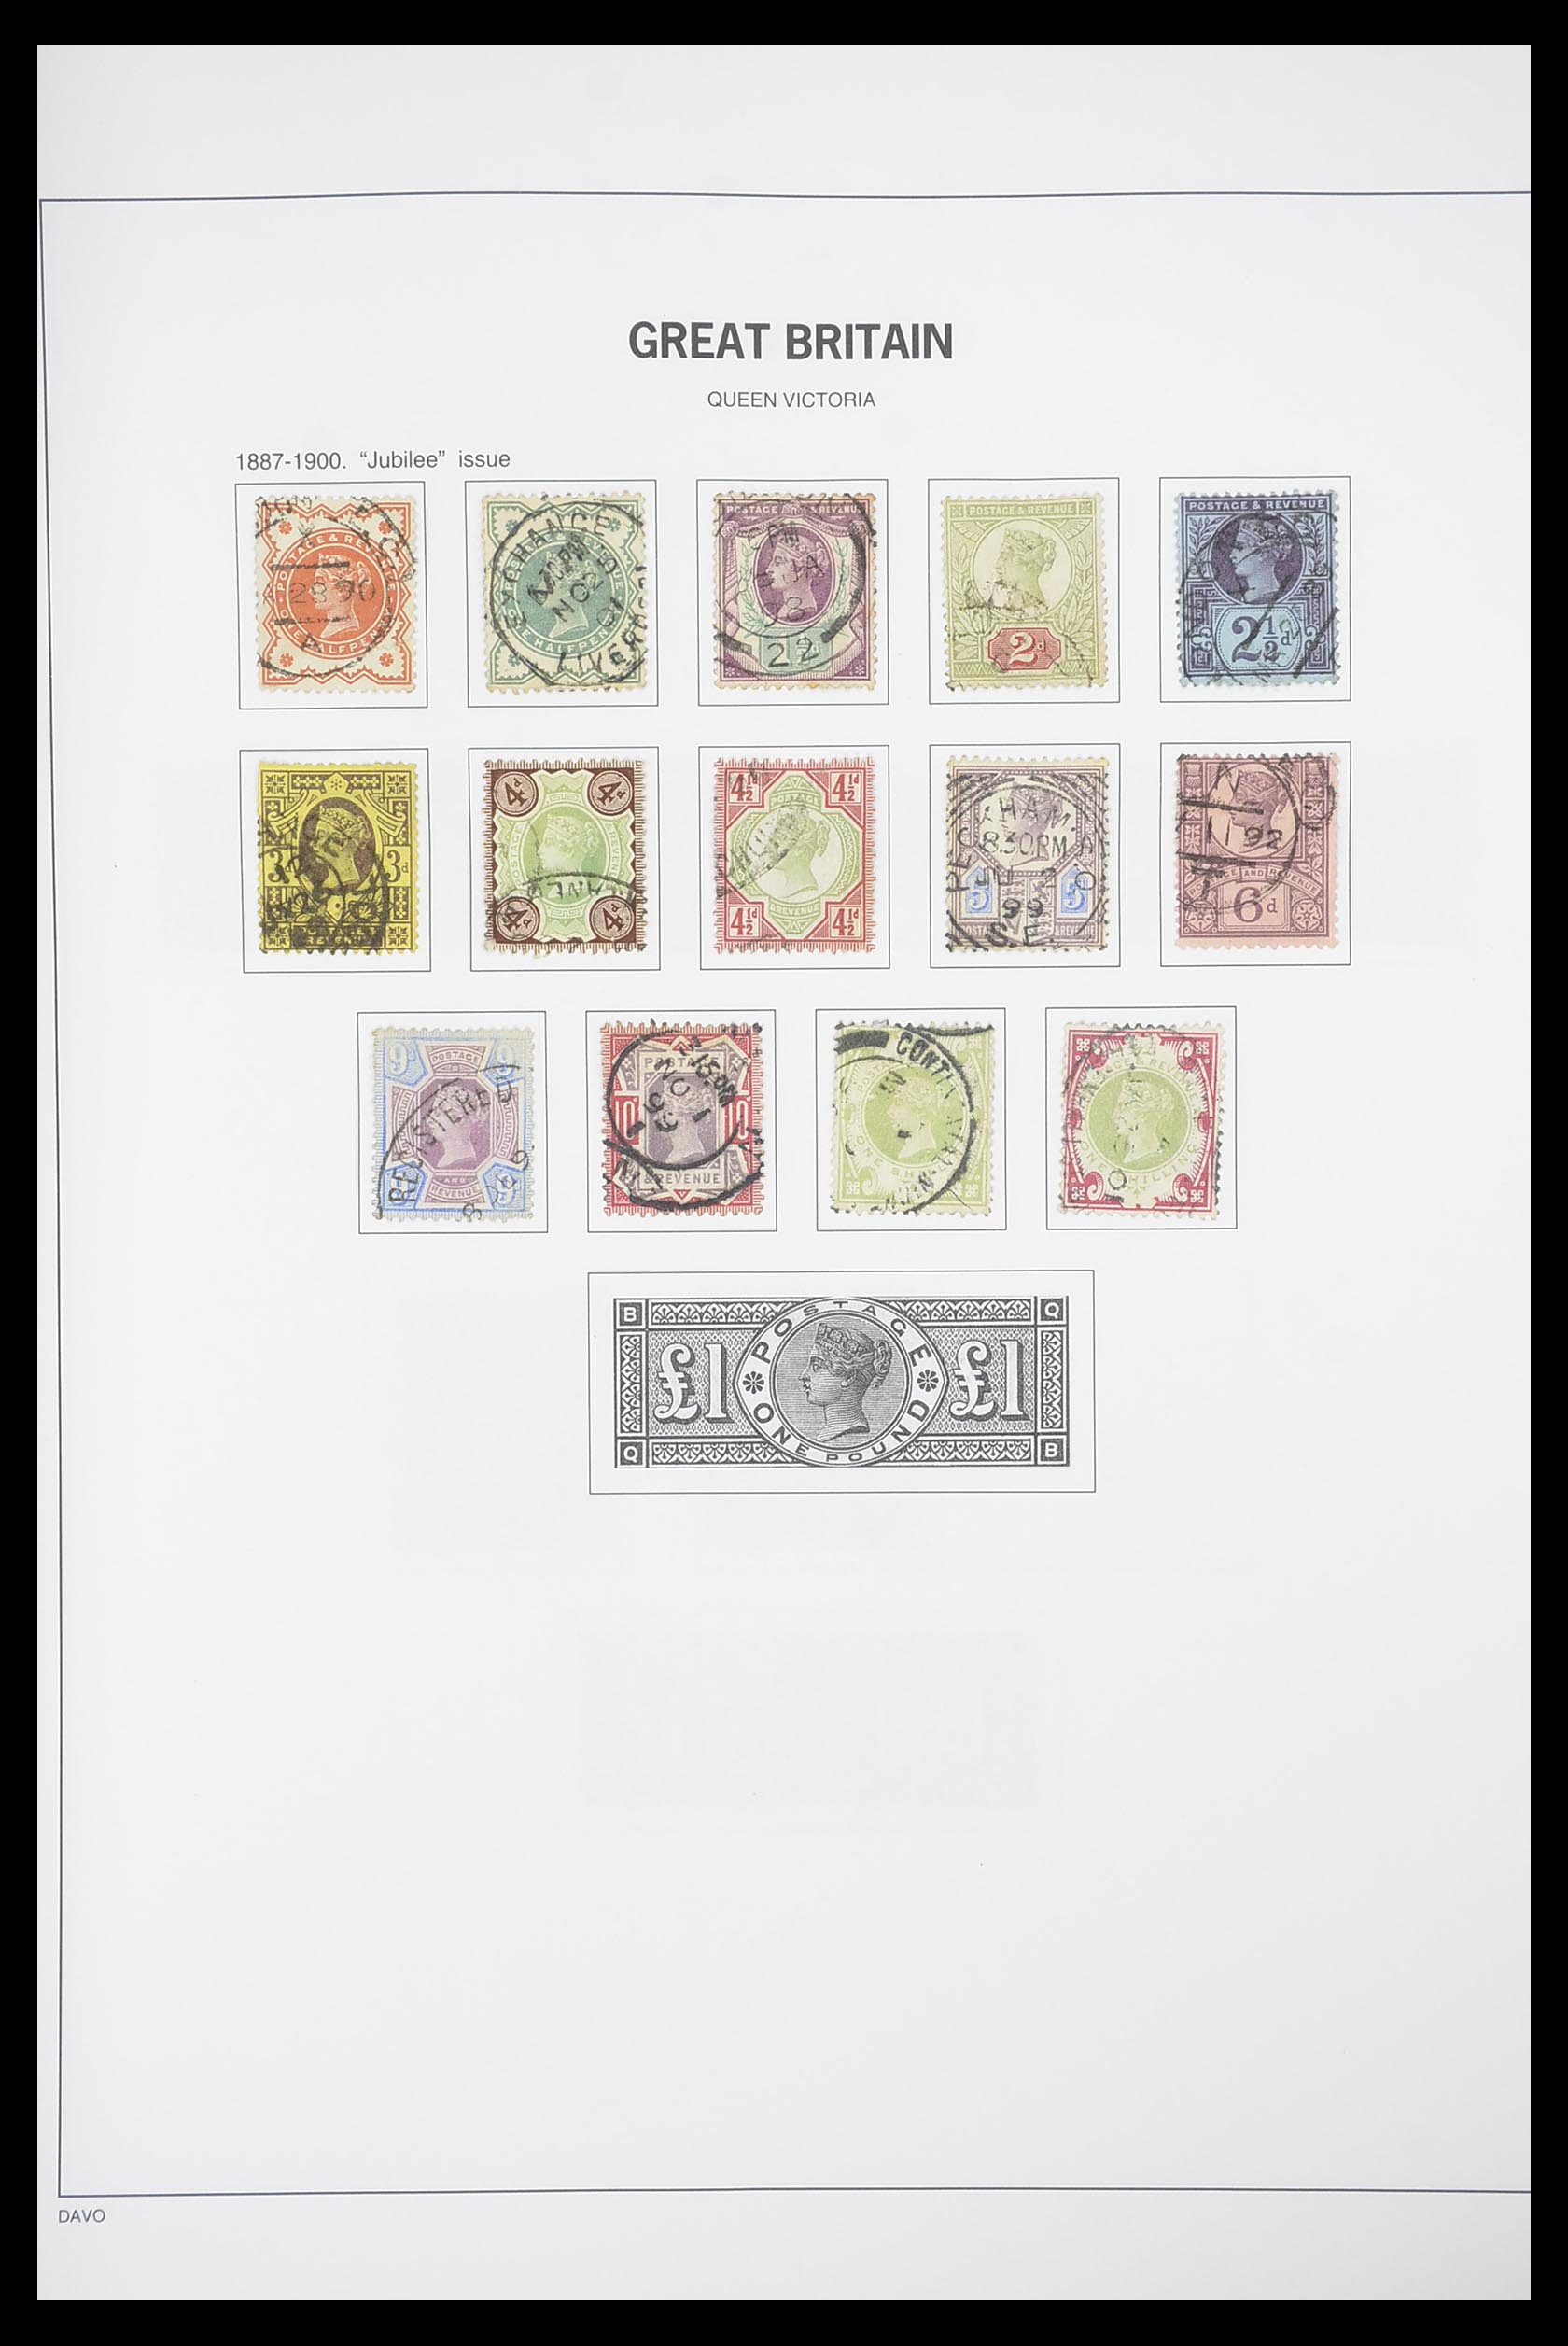 33898 006 - Stamp collection 33898 Great Britain 1840-2006.